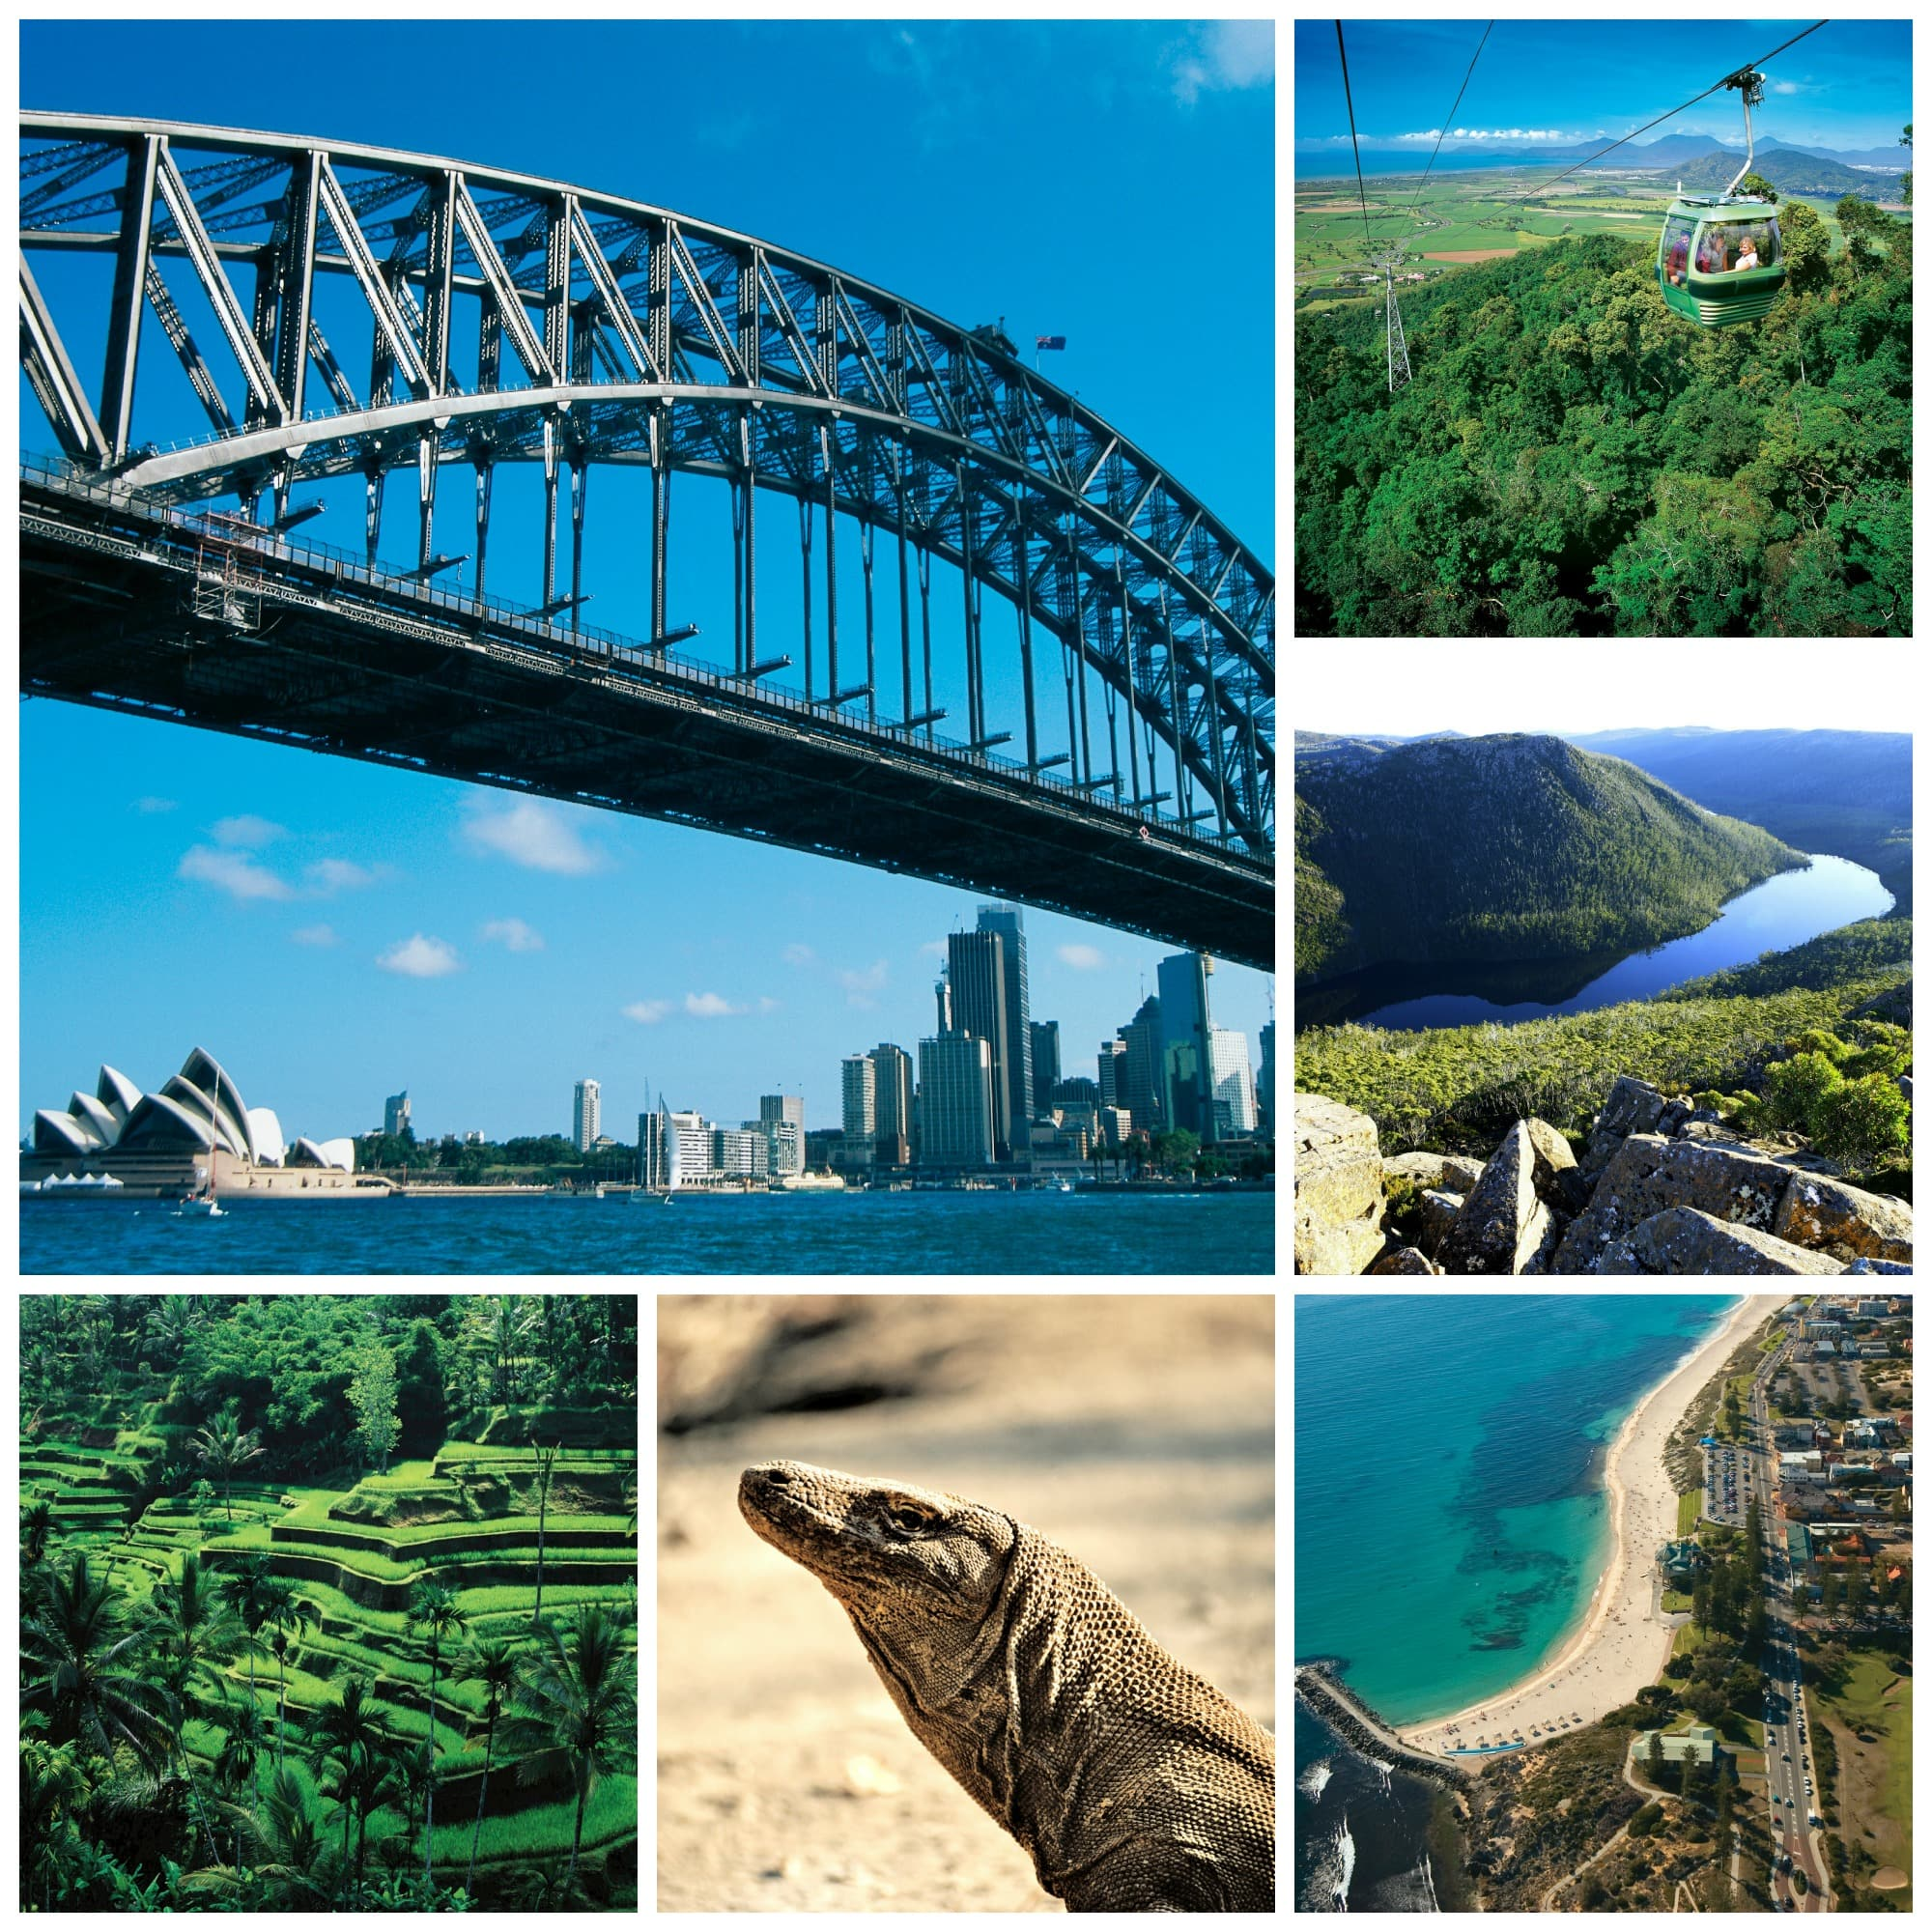 The Australia circumnavigation offers an in-depth look at the continent and beyond, with calls at (clockwise from top left) Sydney, Cairns, Hobart, Komodo Island and Bali.